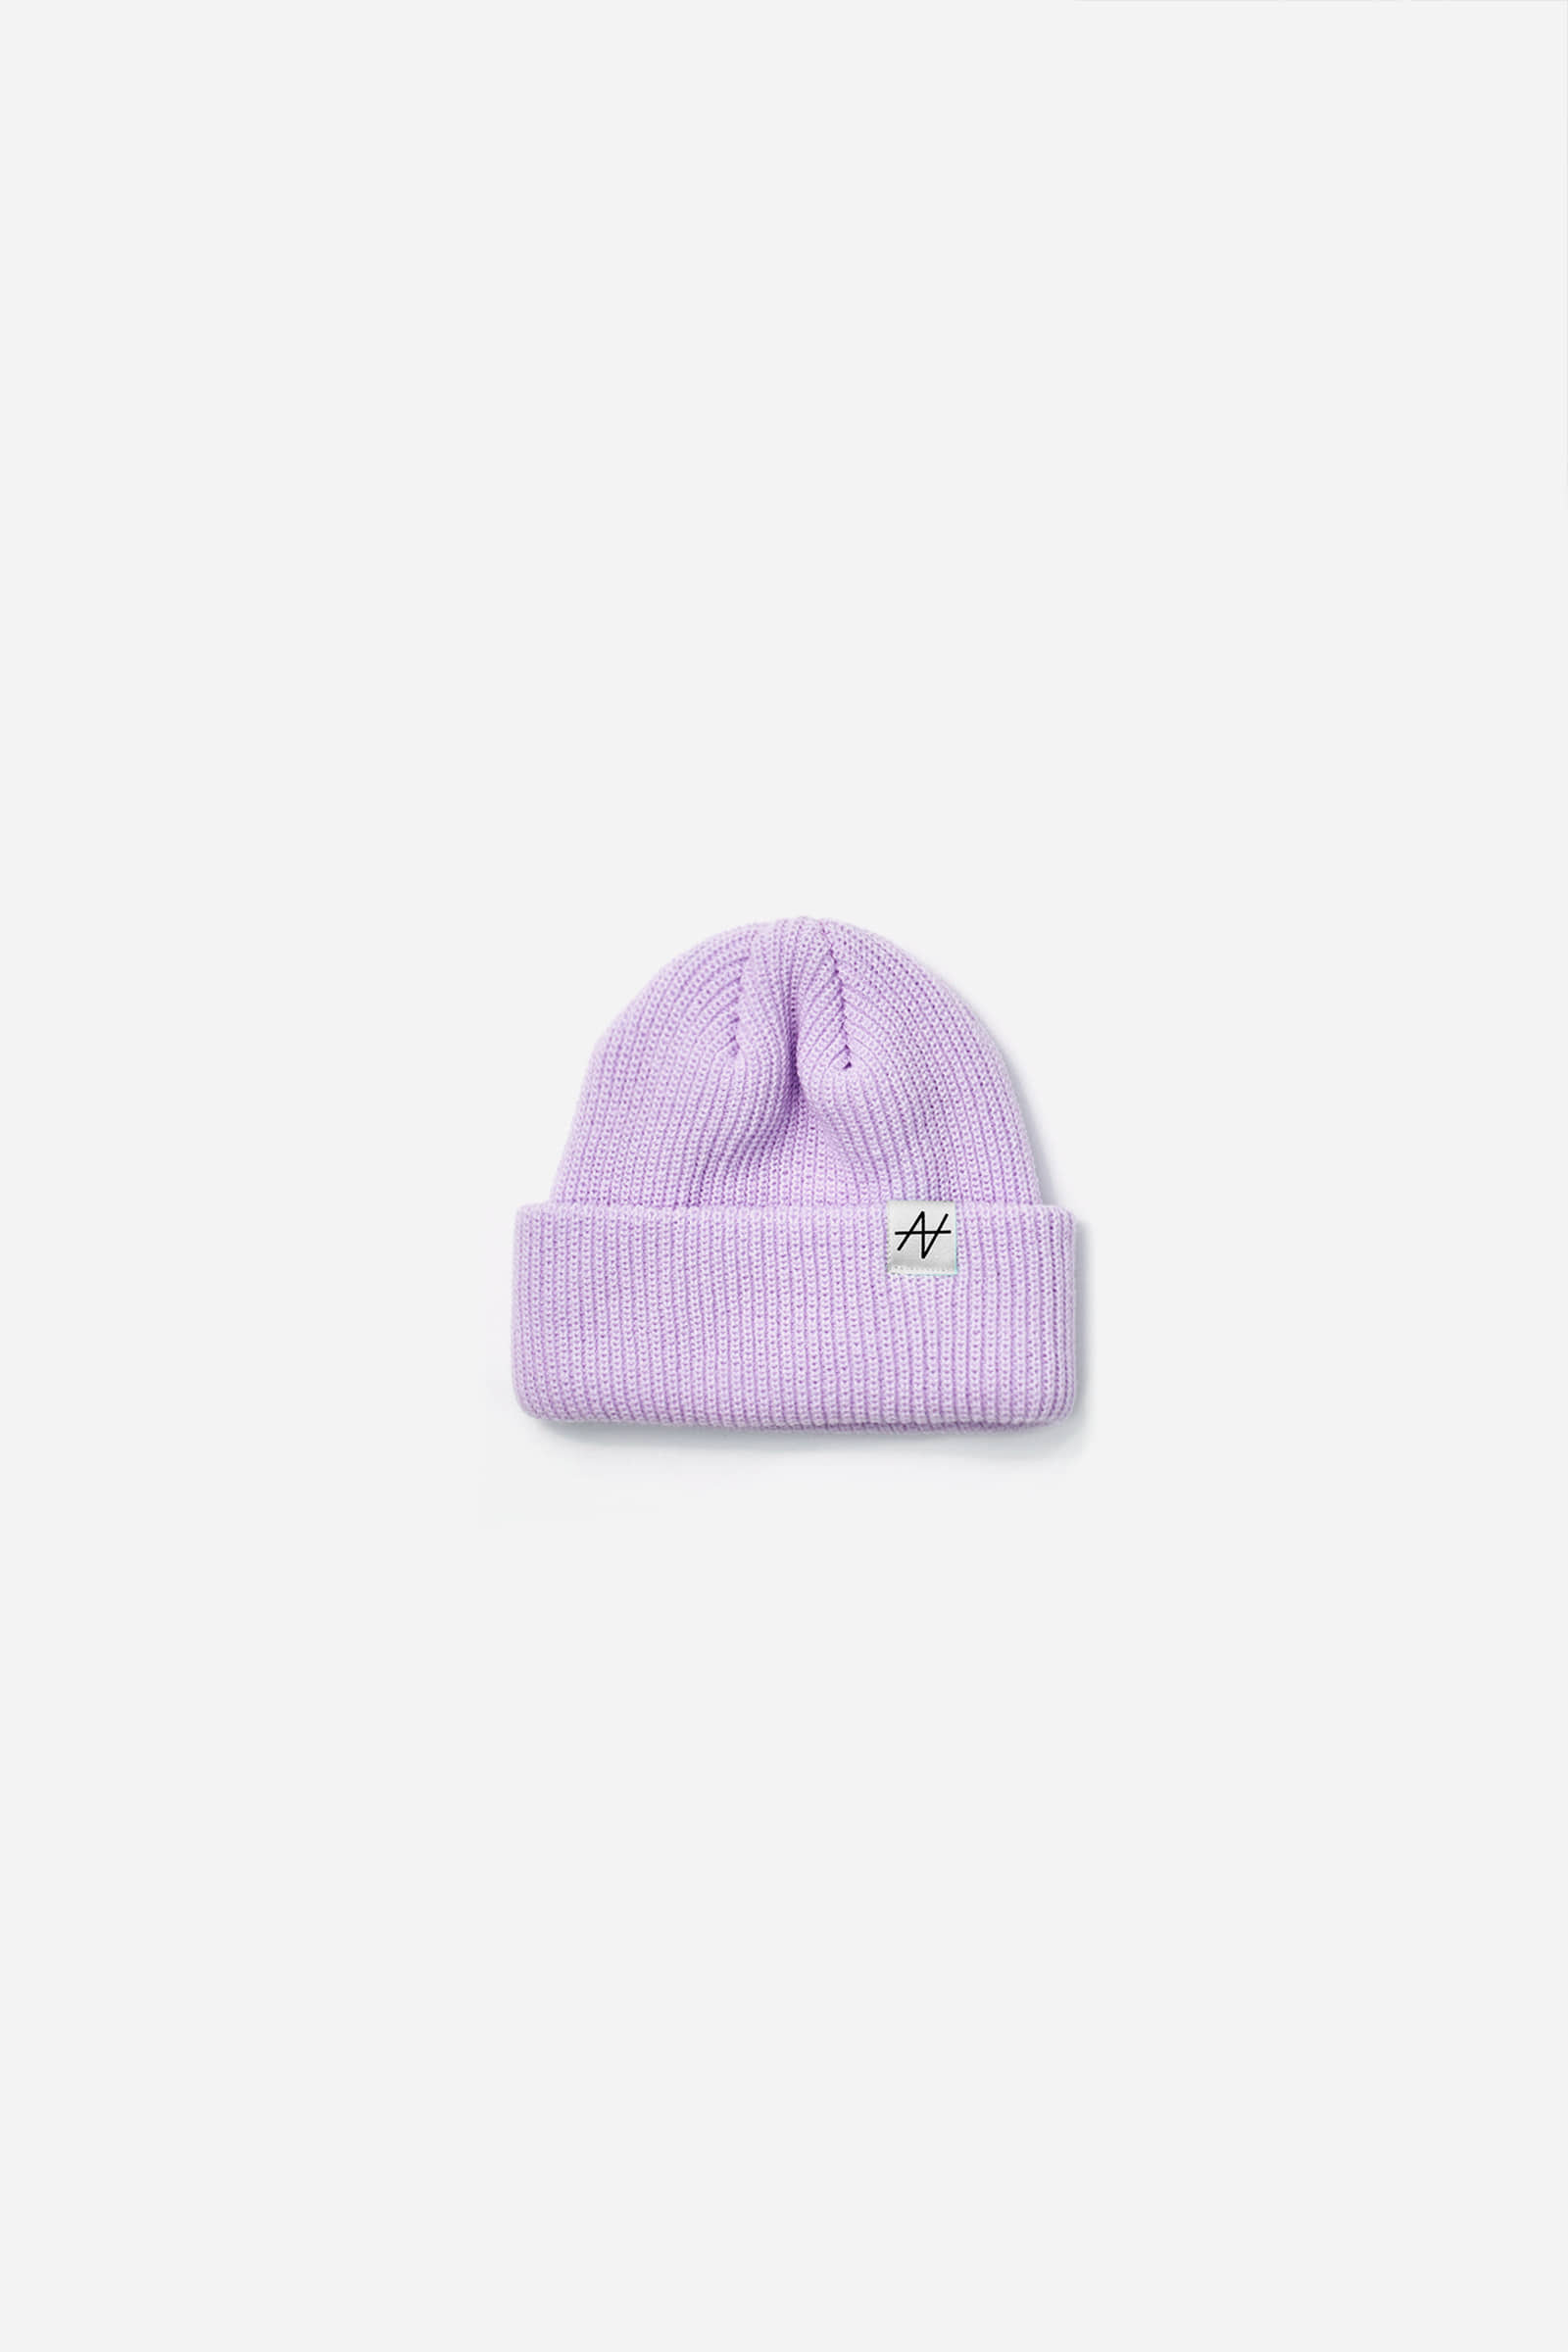 Nieeh Pastel Short Beanie_LIGHT PURPLE